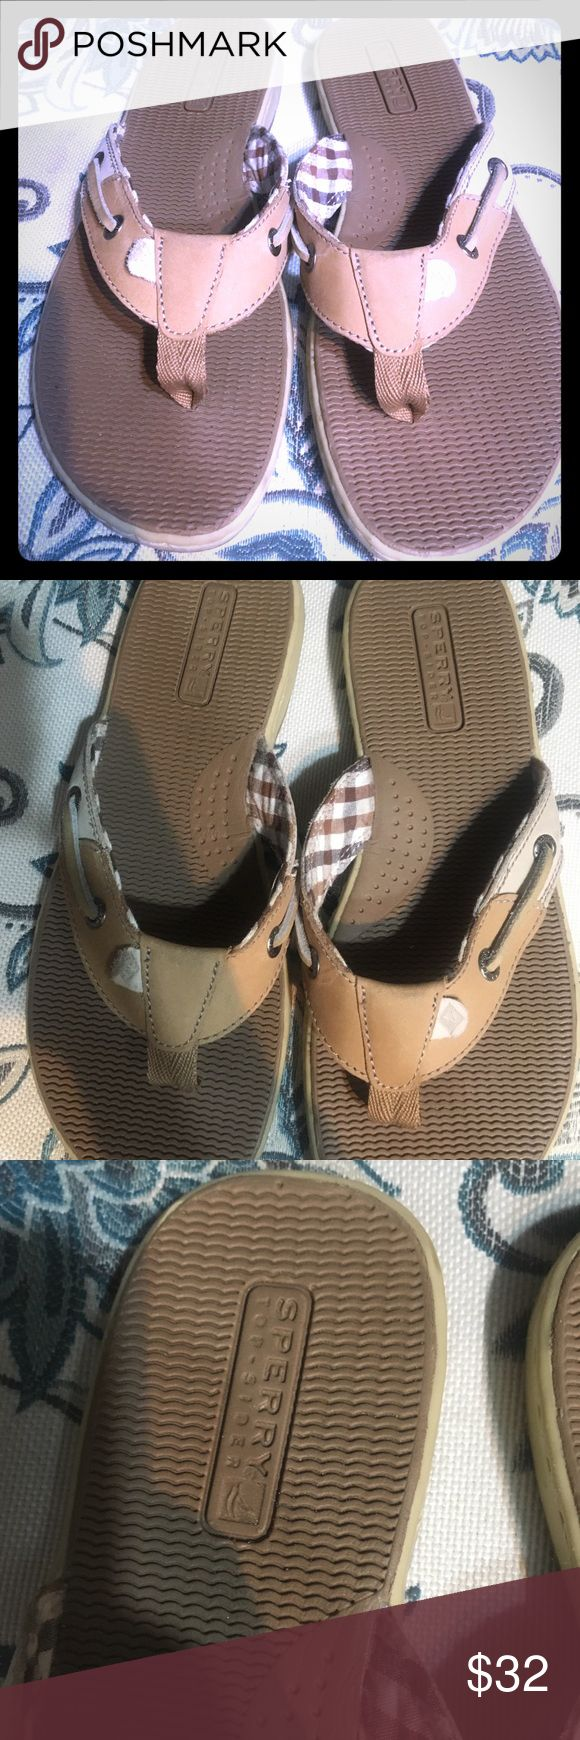 Sperry sandals Super cute   Casual day shoe  Worn once. Like brand new Sperry Shoes Sandals